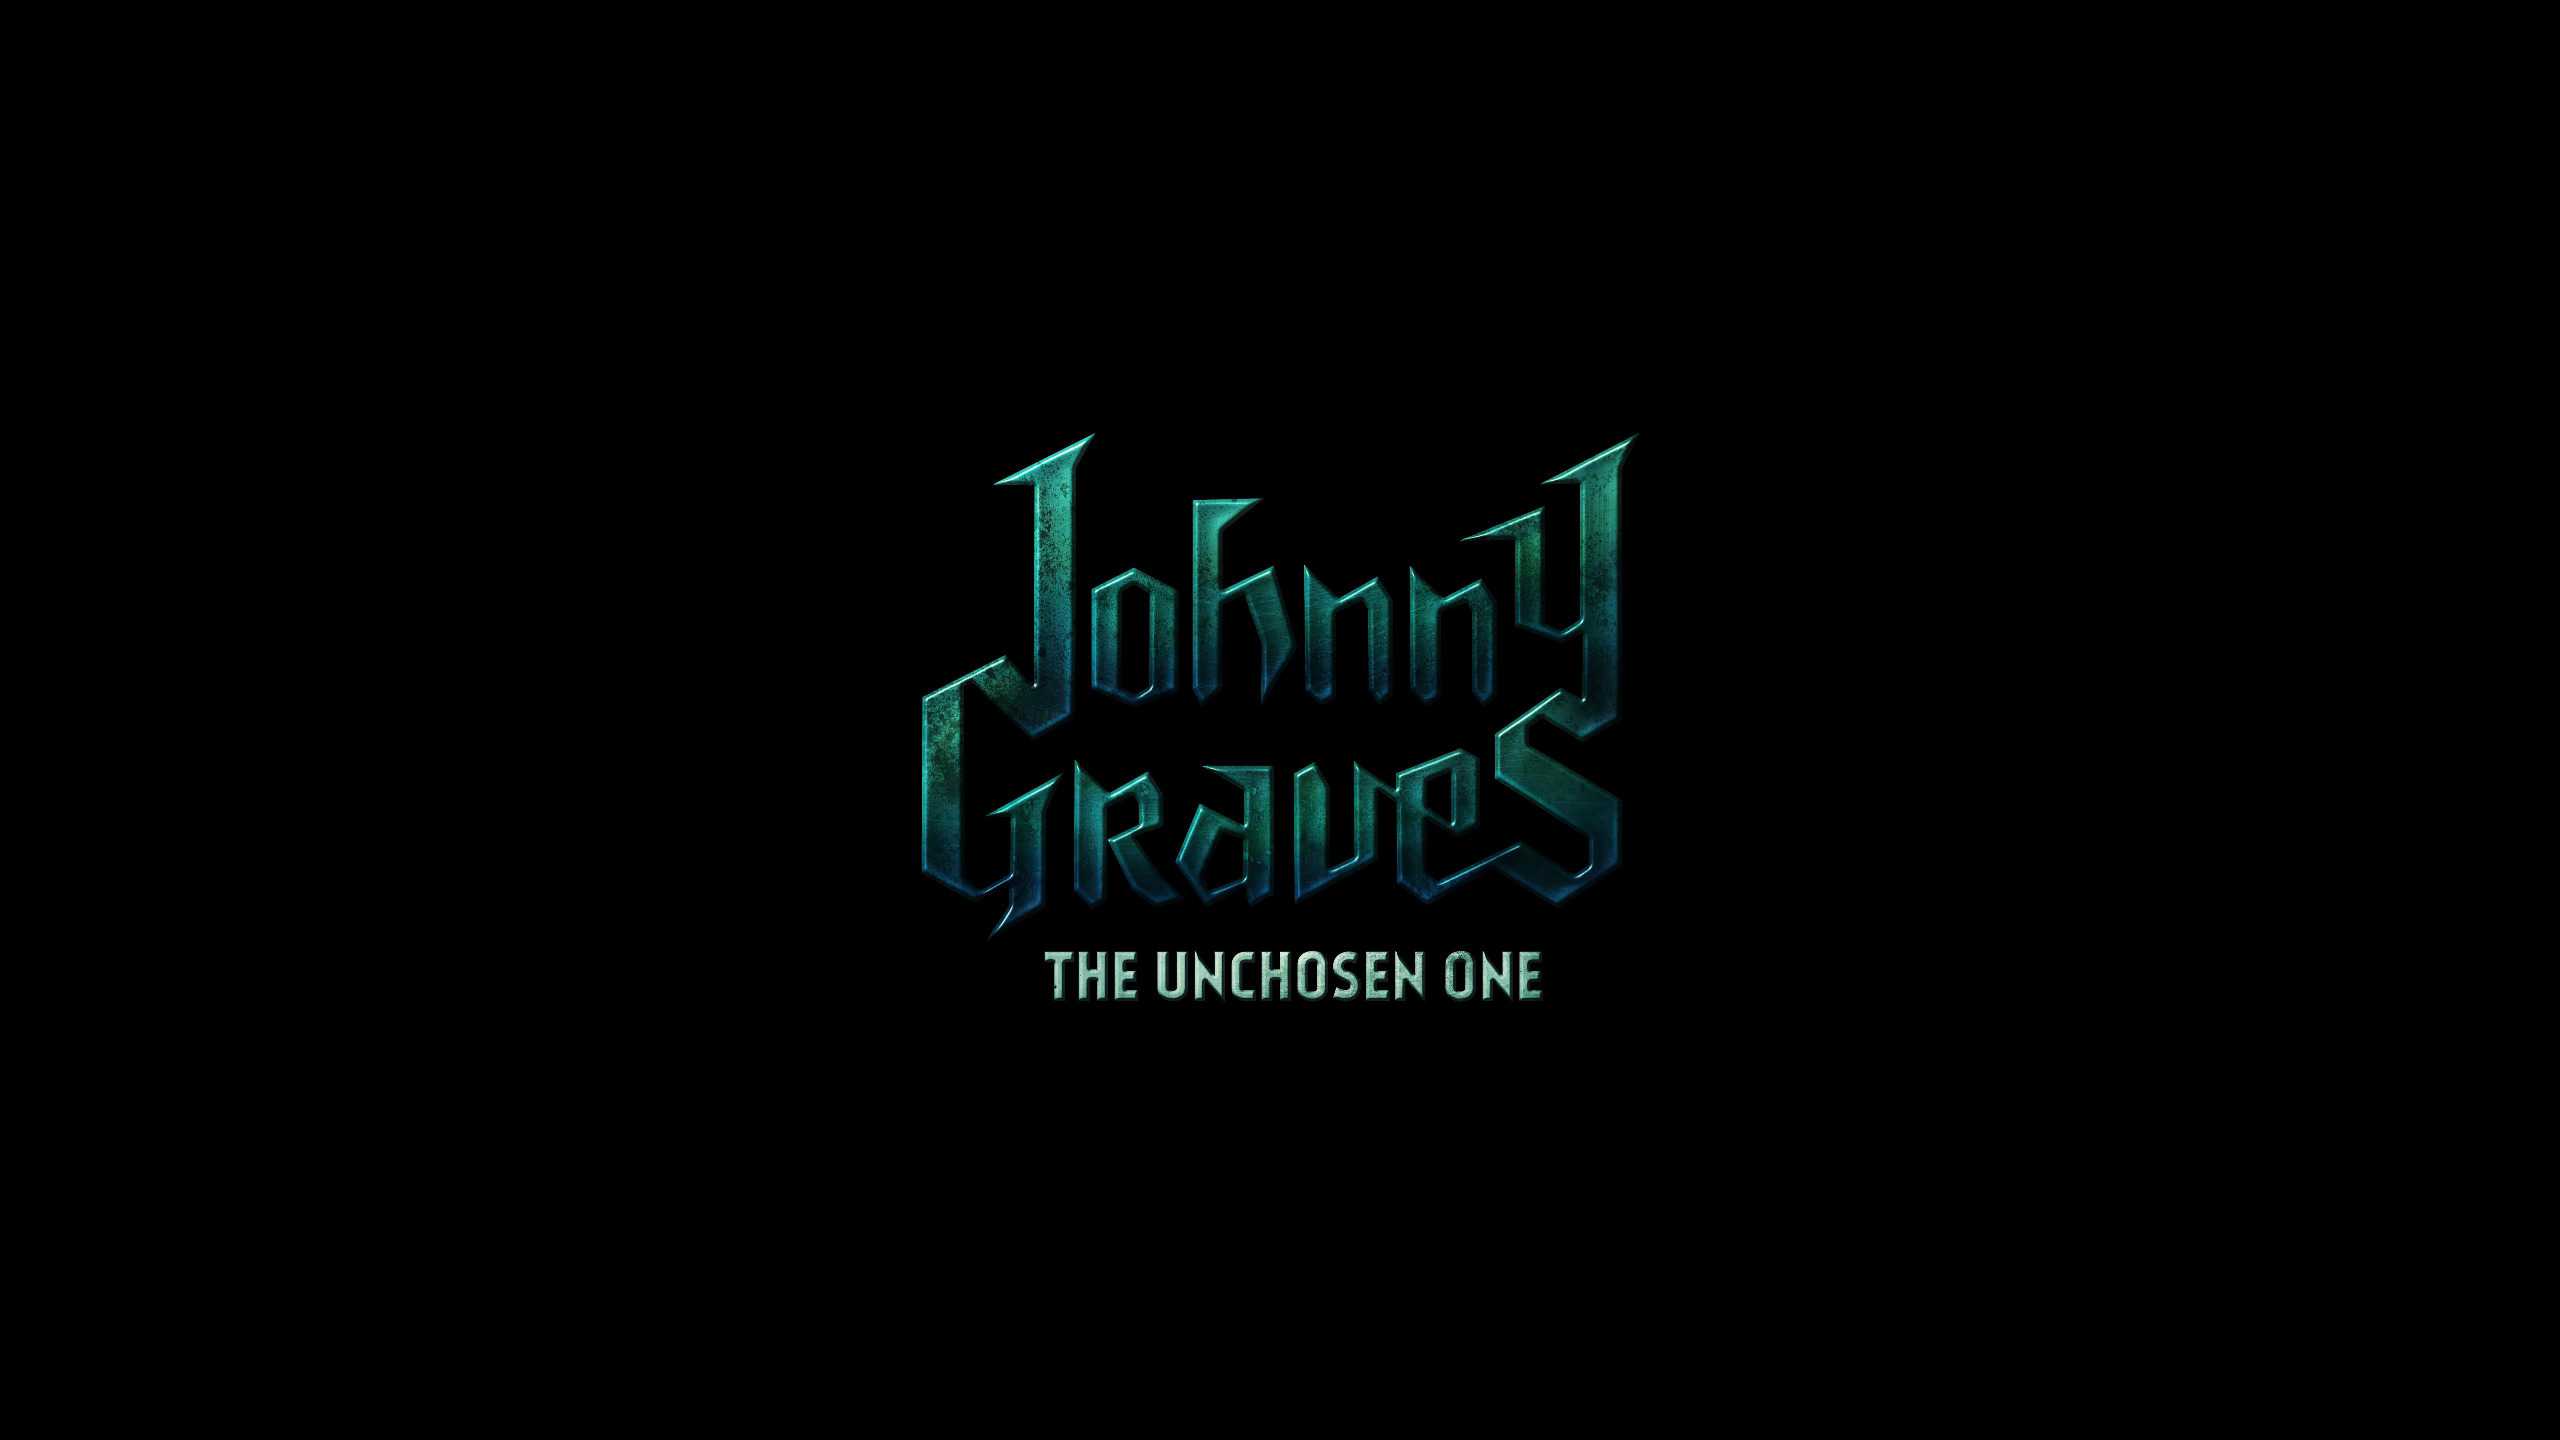 Johnny Graves The Unchosen One Free Download